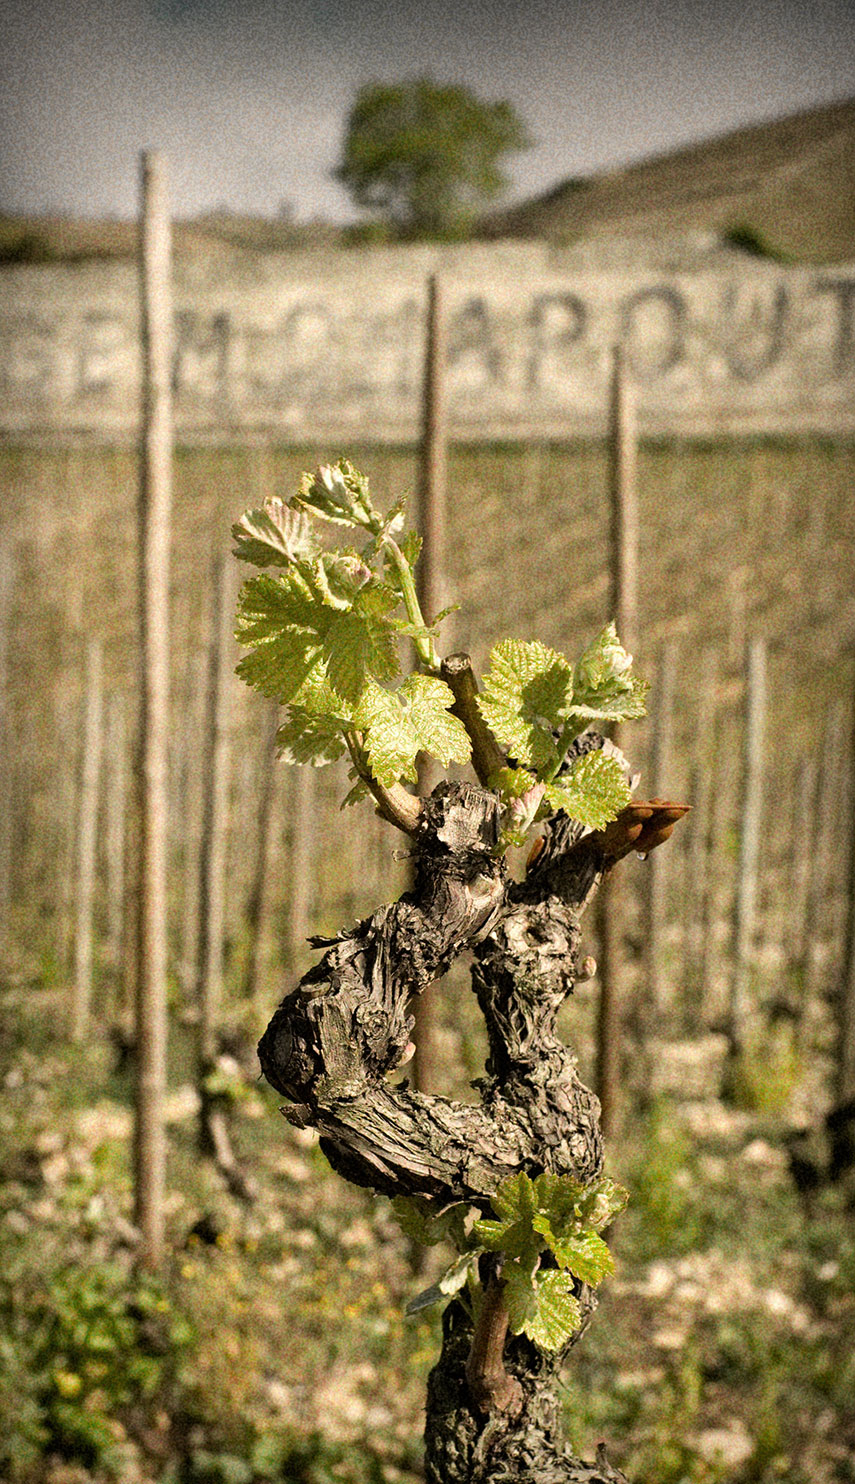 Chapoutier vine springing into life